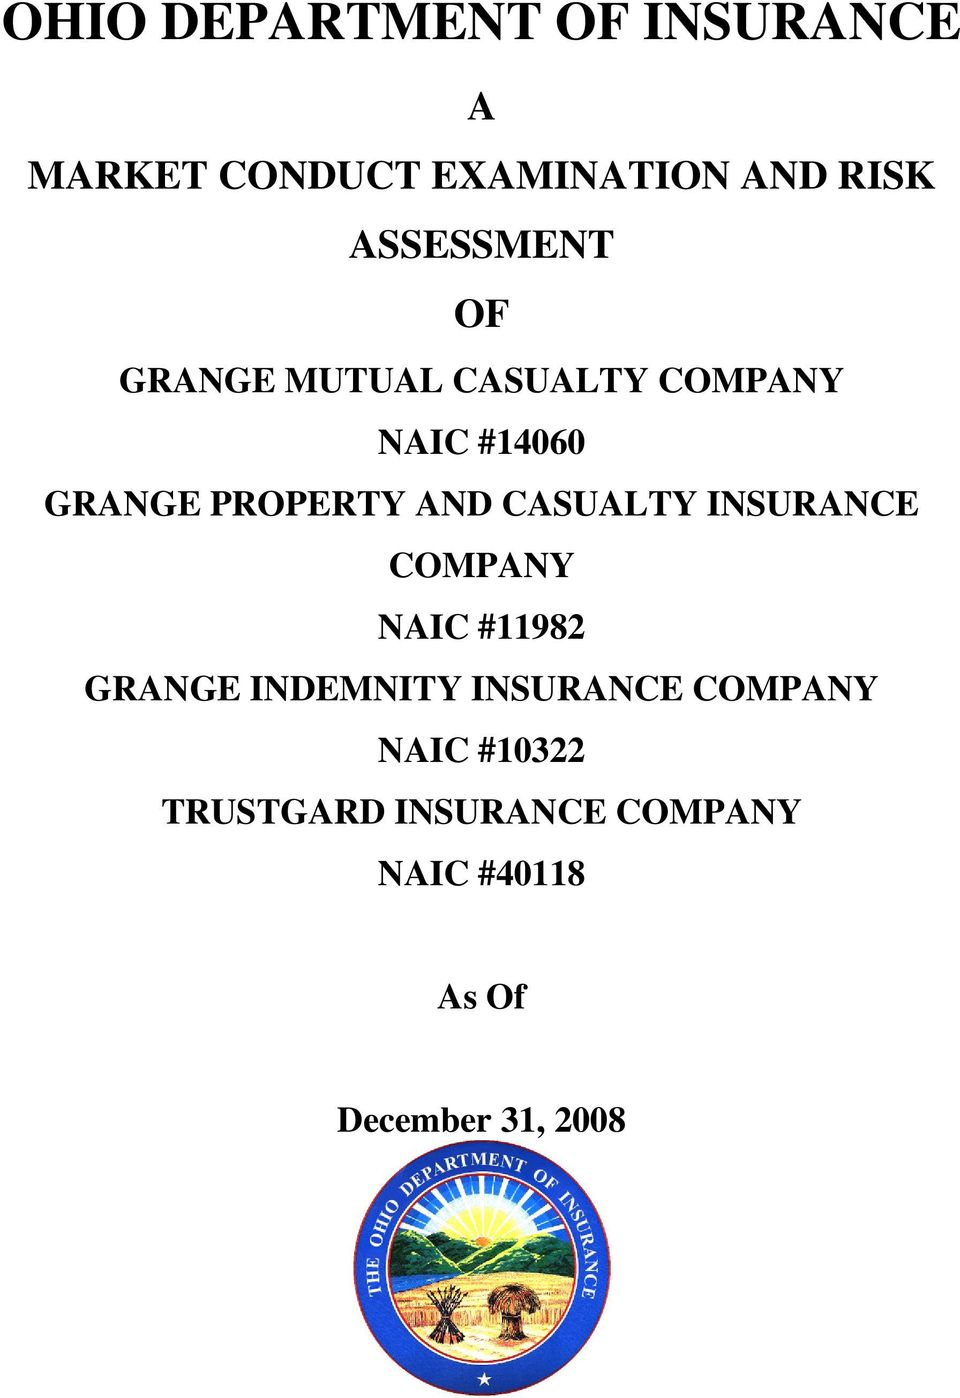 AND CASUALTY INSURANCE COMPANY NAIC #11982 GRANGE INDEMNITY INSURANCE